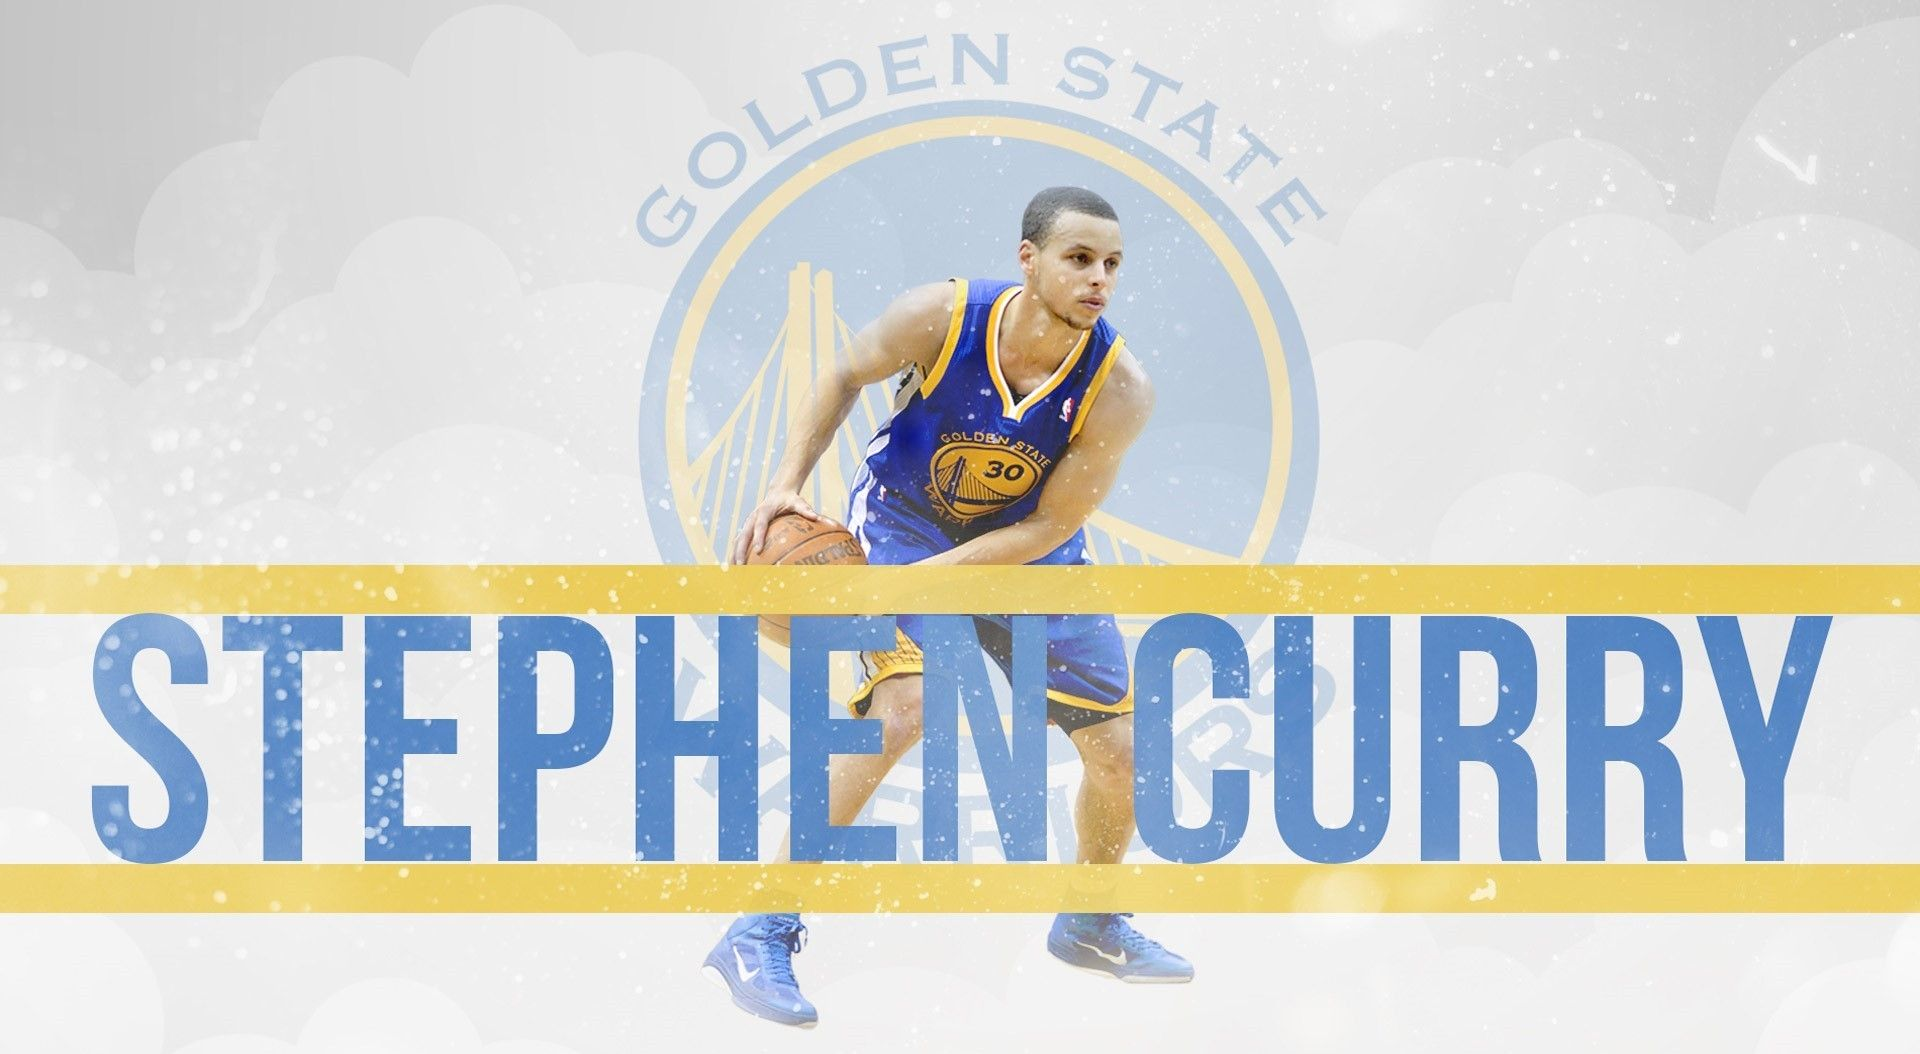 stephen curry cool pictures